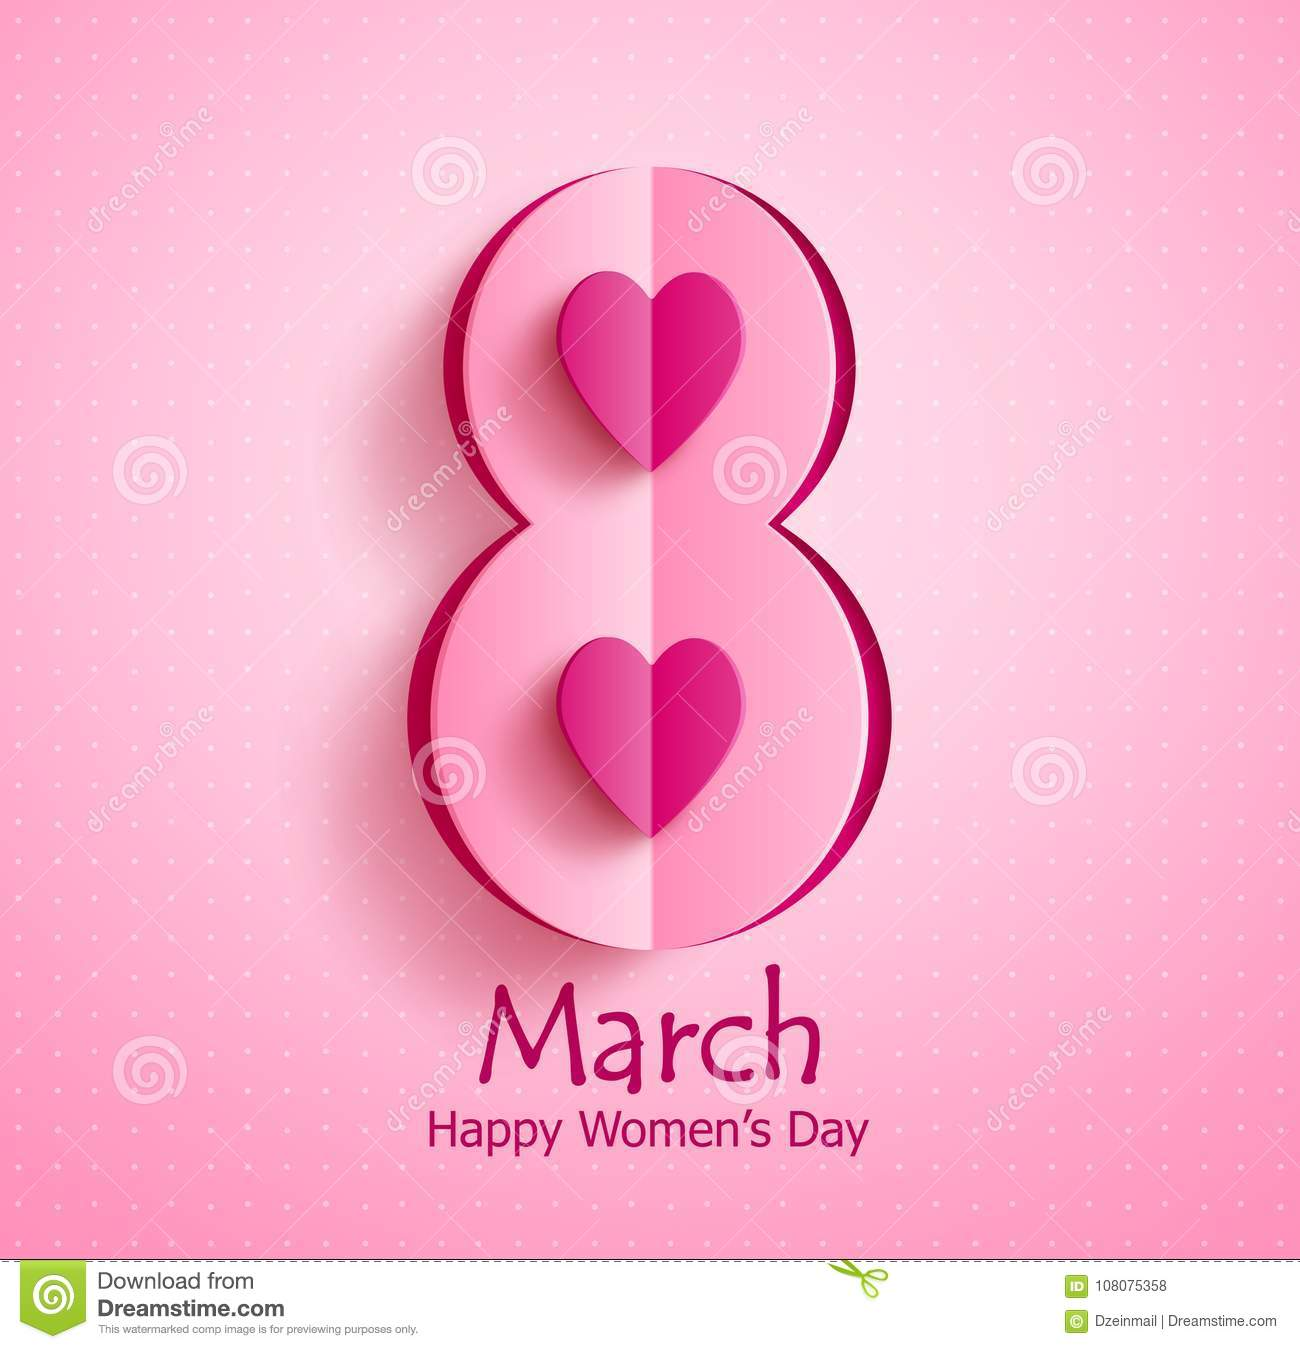 Happy women`s day vector banner design with March 8 text and paper cut heart